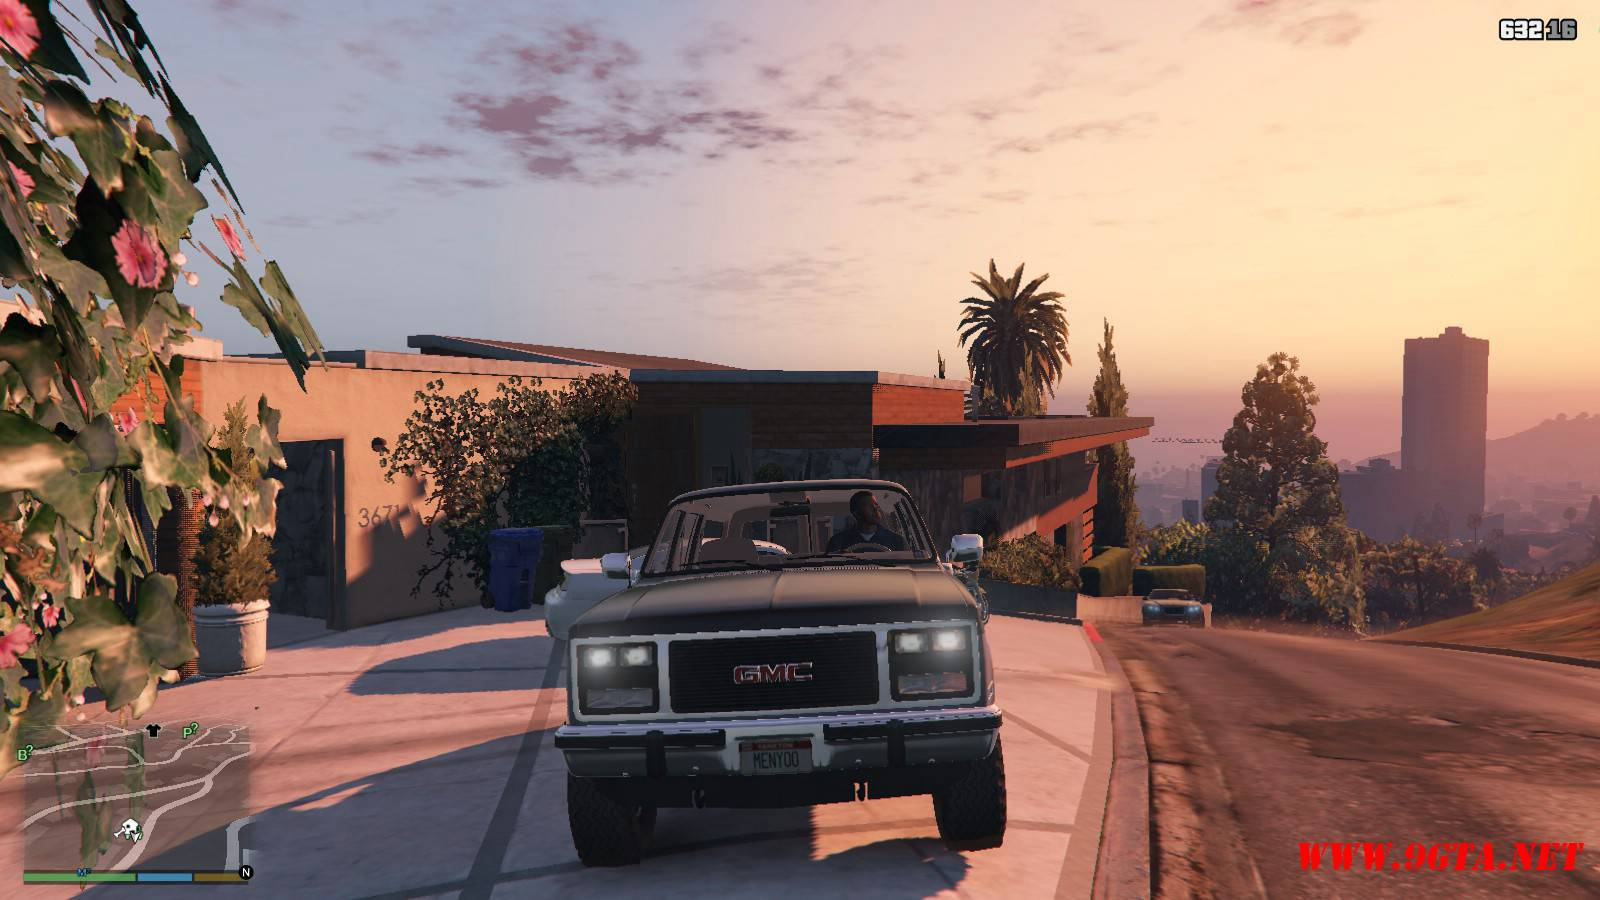 1989 GMC Suburban Mod For GTA 5 (5)